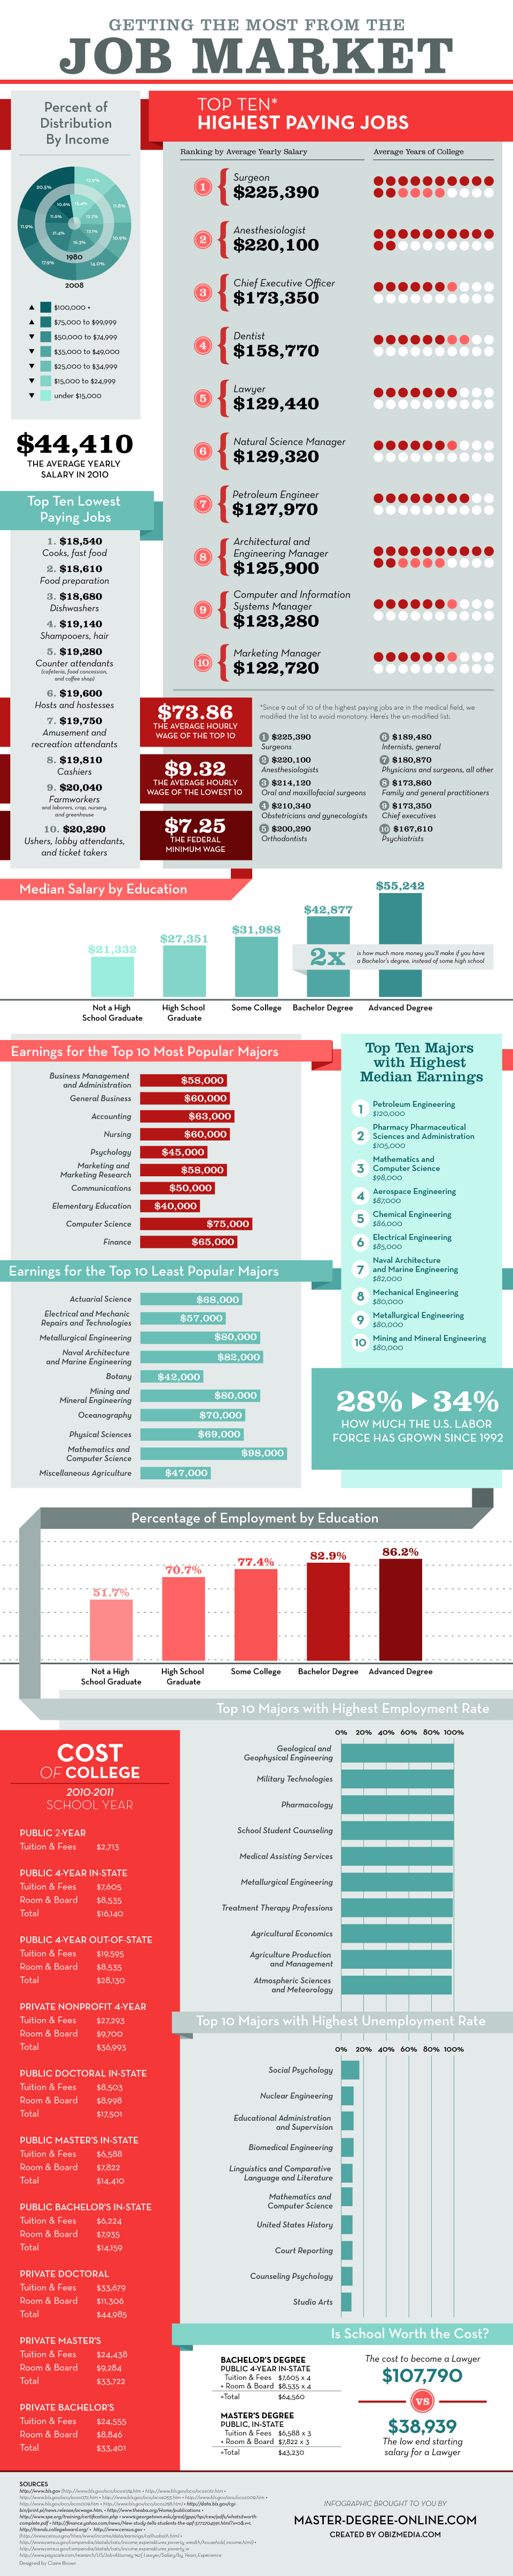 Medical Device Recruiting - Job Market Infographic - Top Paying Jobs